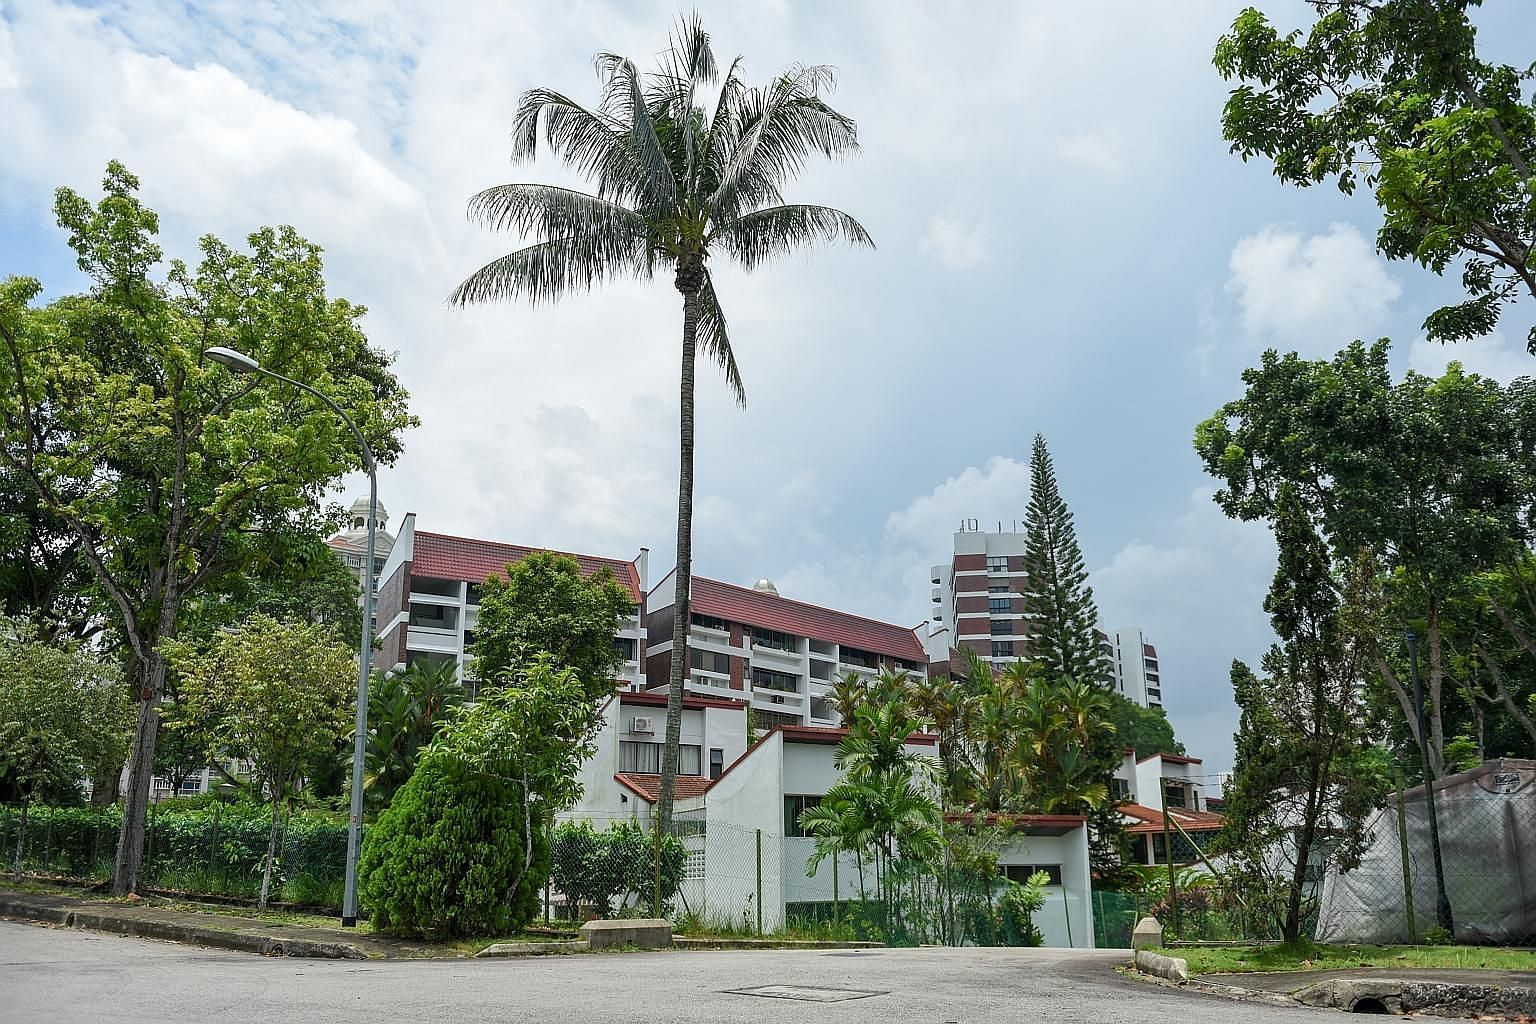 The 236-unit Faber Garden condo, whose $1.18 billion collective sale tender closed without a sale in late May, sits on a 544,738 sq ft site off Upper Thomson Road. ST understands that Faber Garden's collective sale committee is evaluating its options